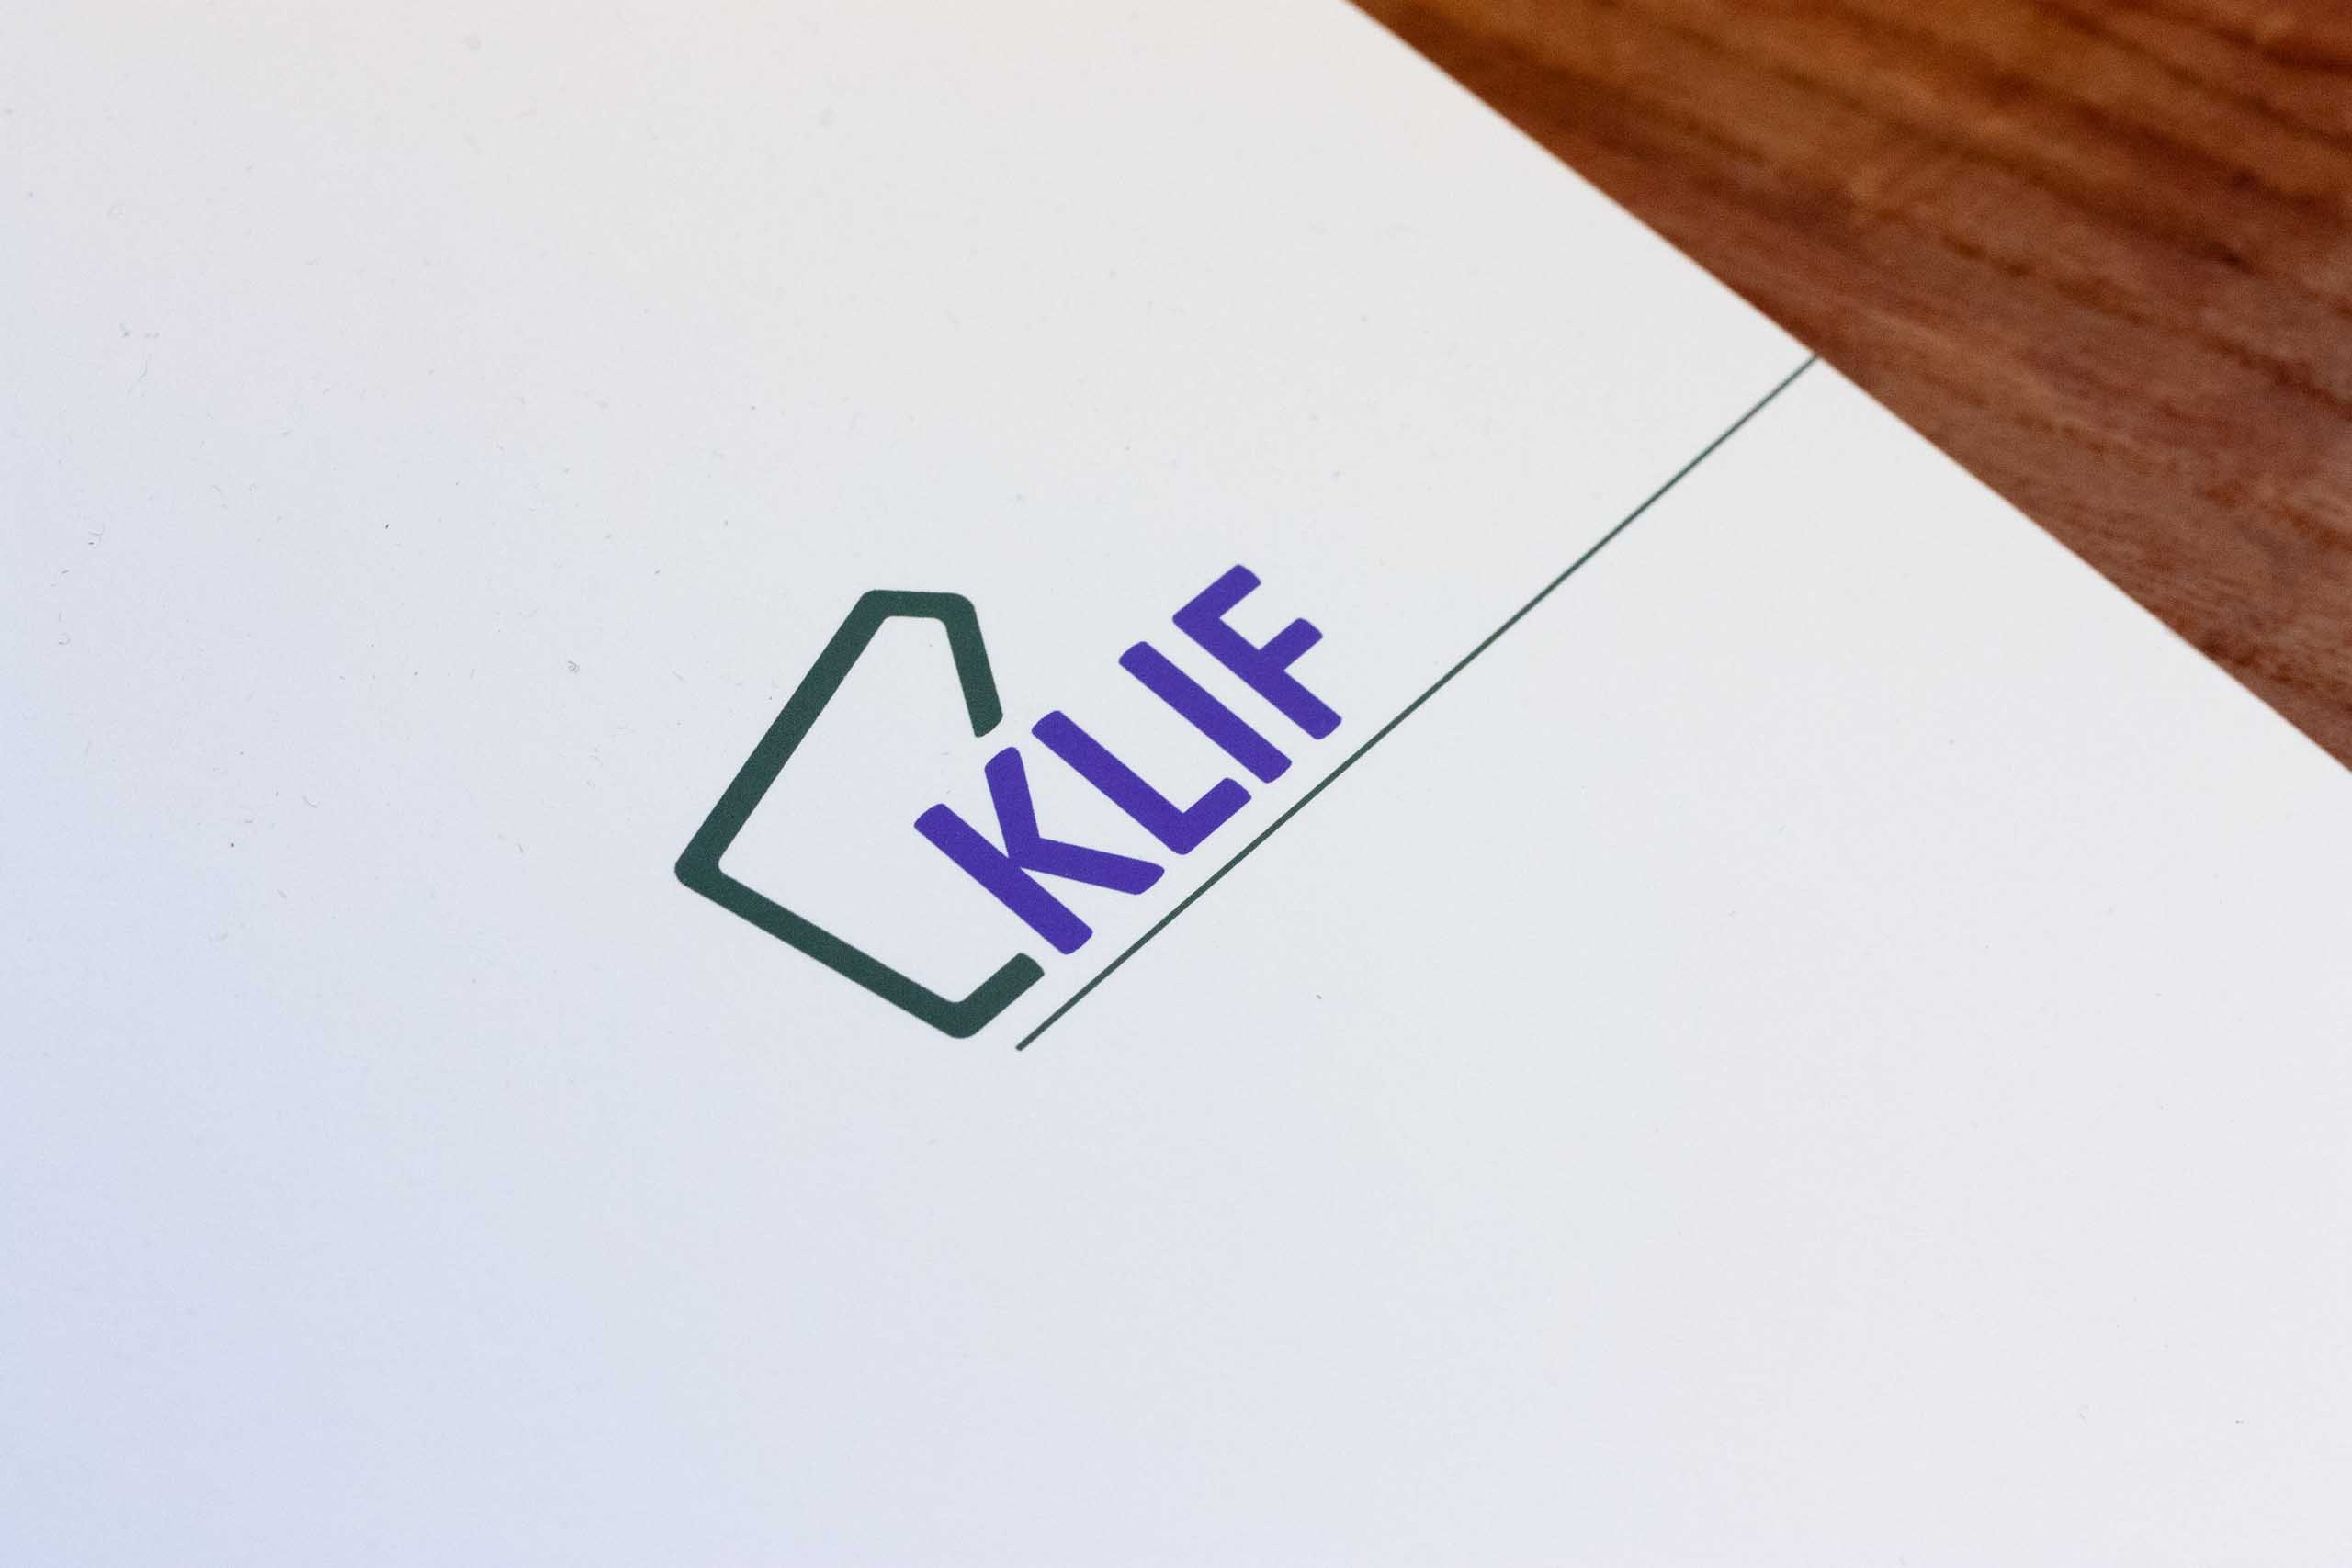 Close up of the Klif Restaurant logo on the menu — by Yagnyuk.